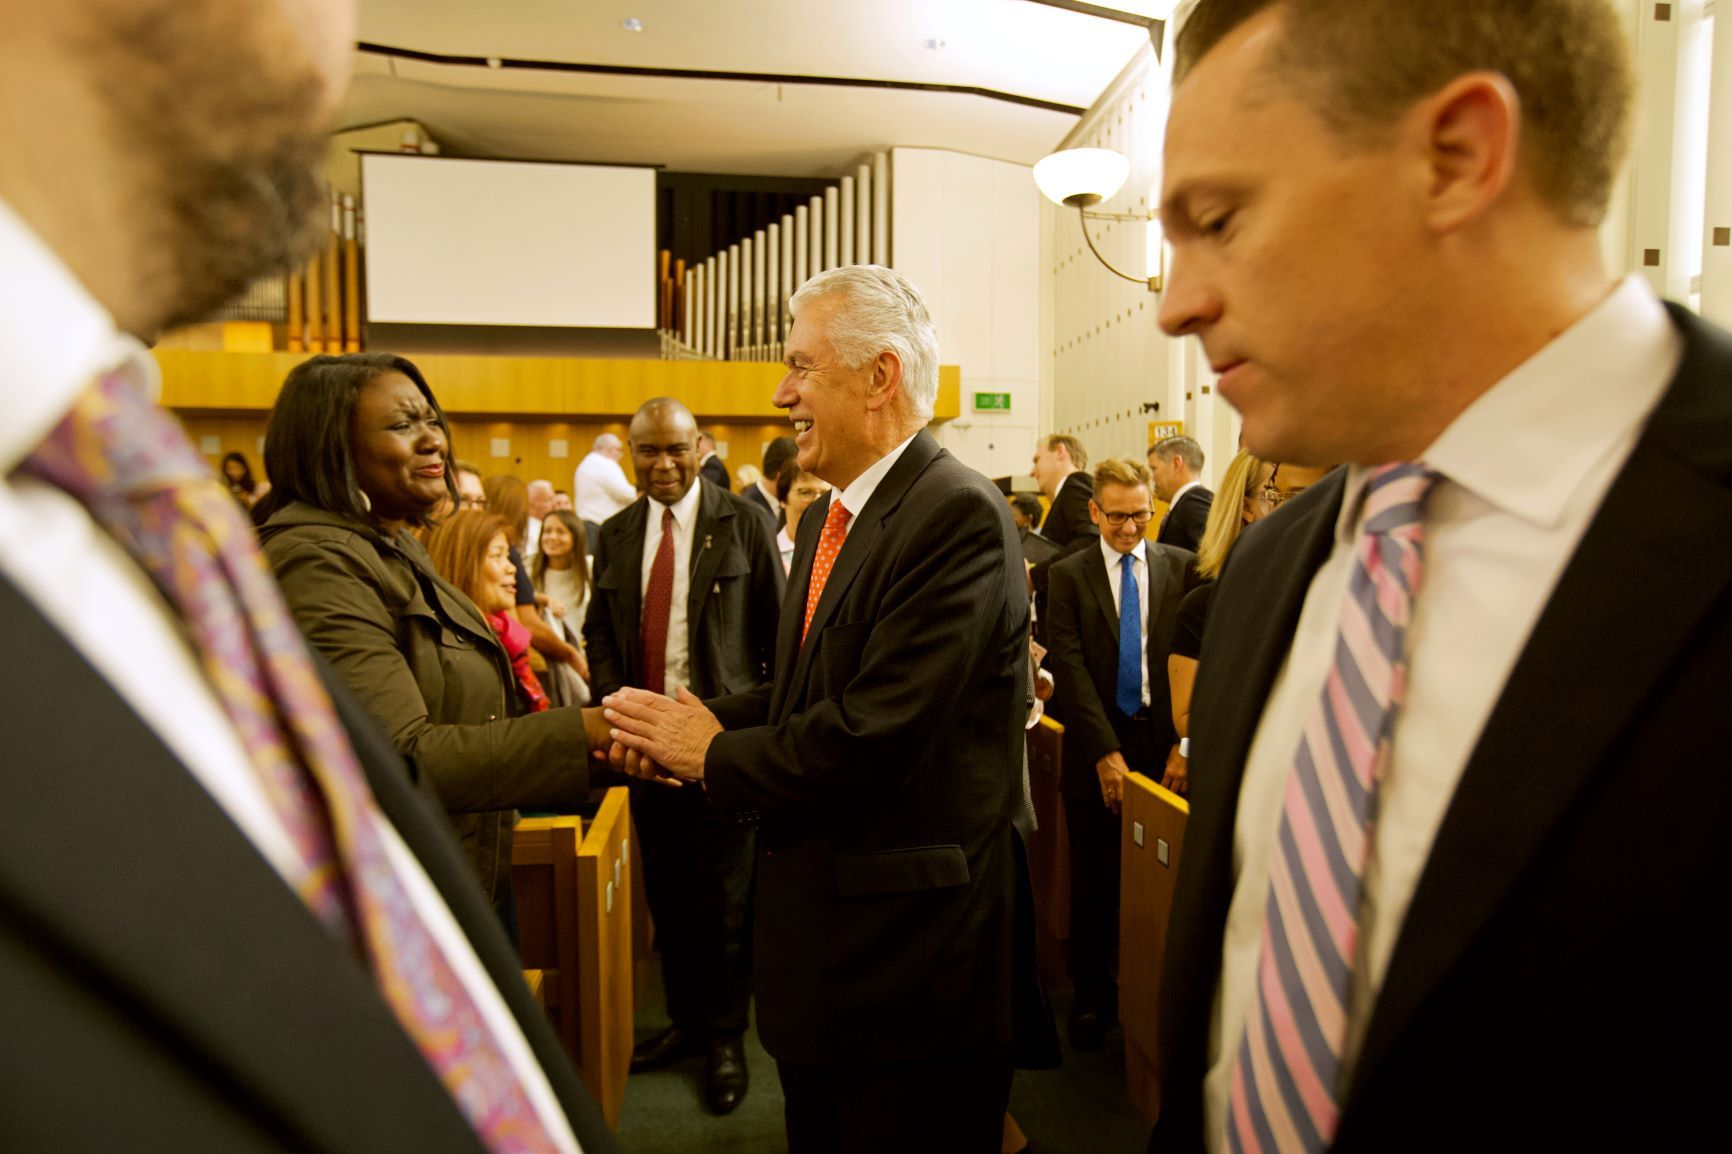 Elder Dieter F. Uchtdorf of the Quorum of the Twelve Apostles greets members following a leadership conference held Sept. 8, 2018, in London, England.